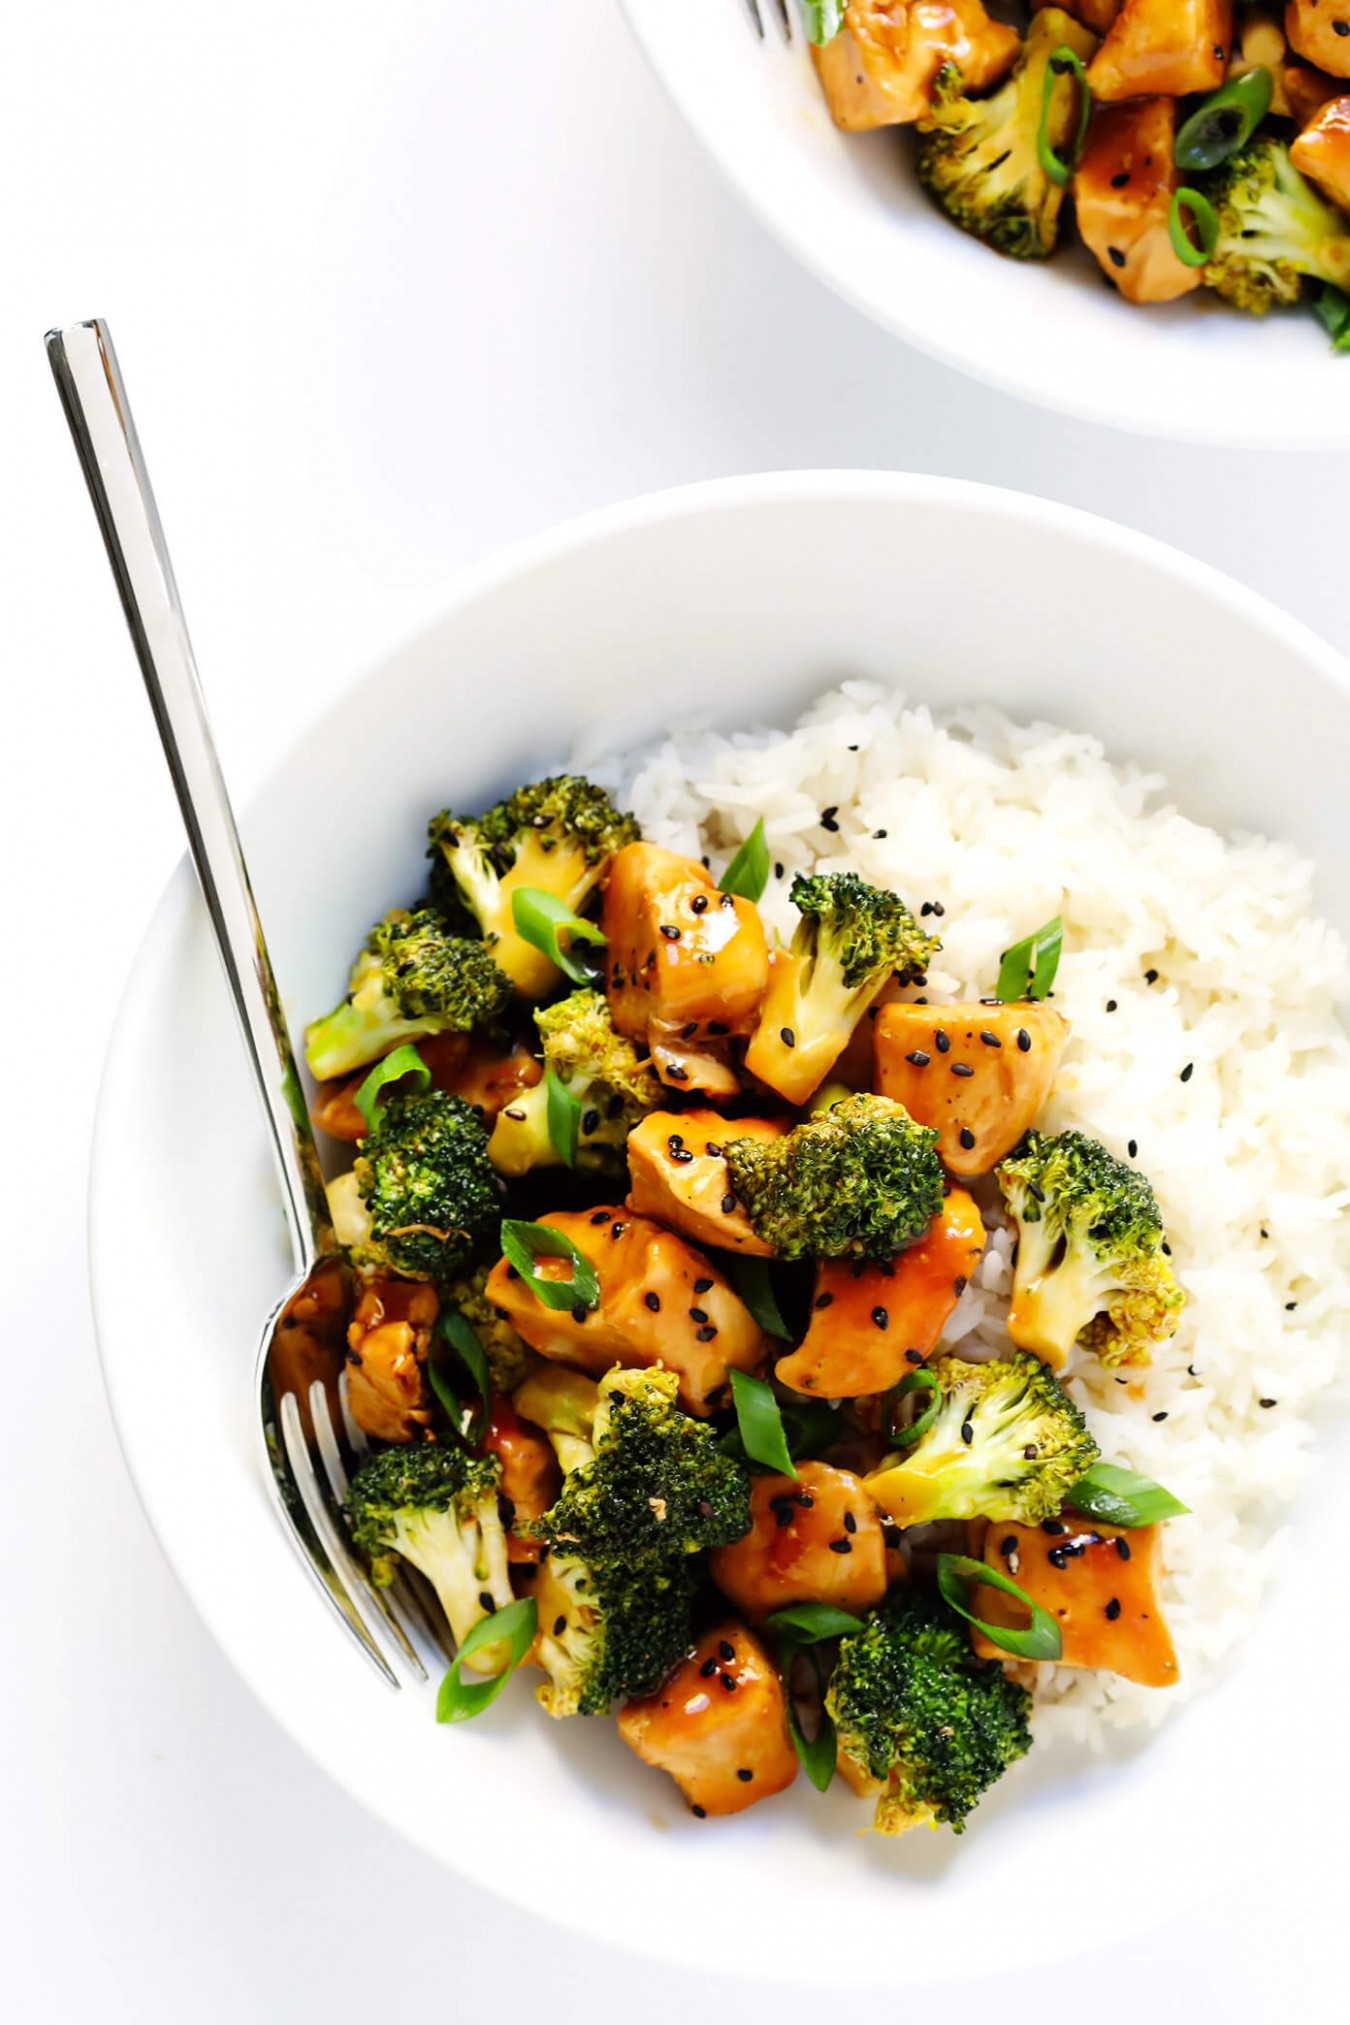 15-Minute Chicken and Broccoli - recipes easy to make for dinner